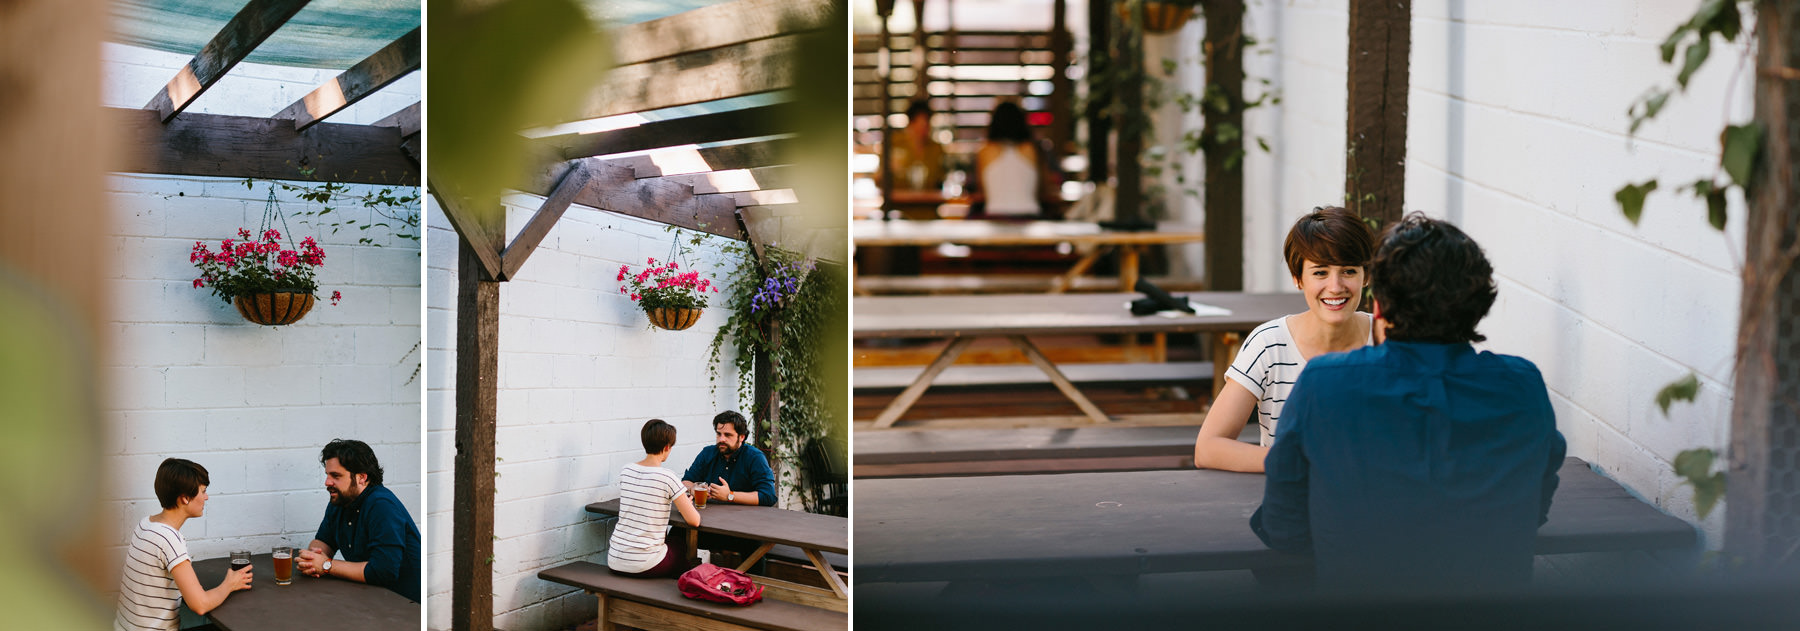 249_Westside Local & Westside Community Garden Engagement Session Kansas City, Missouri_Kindling Wedding Photography.JPG